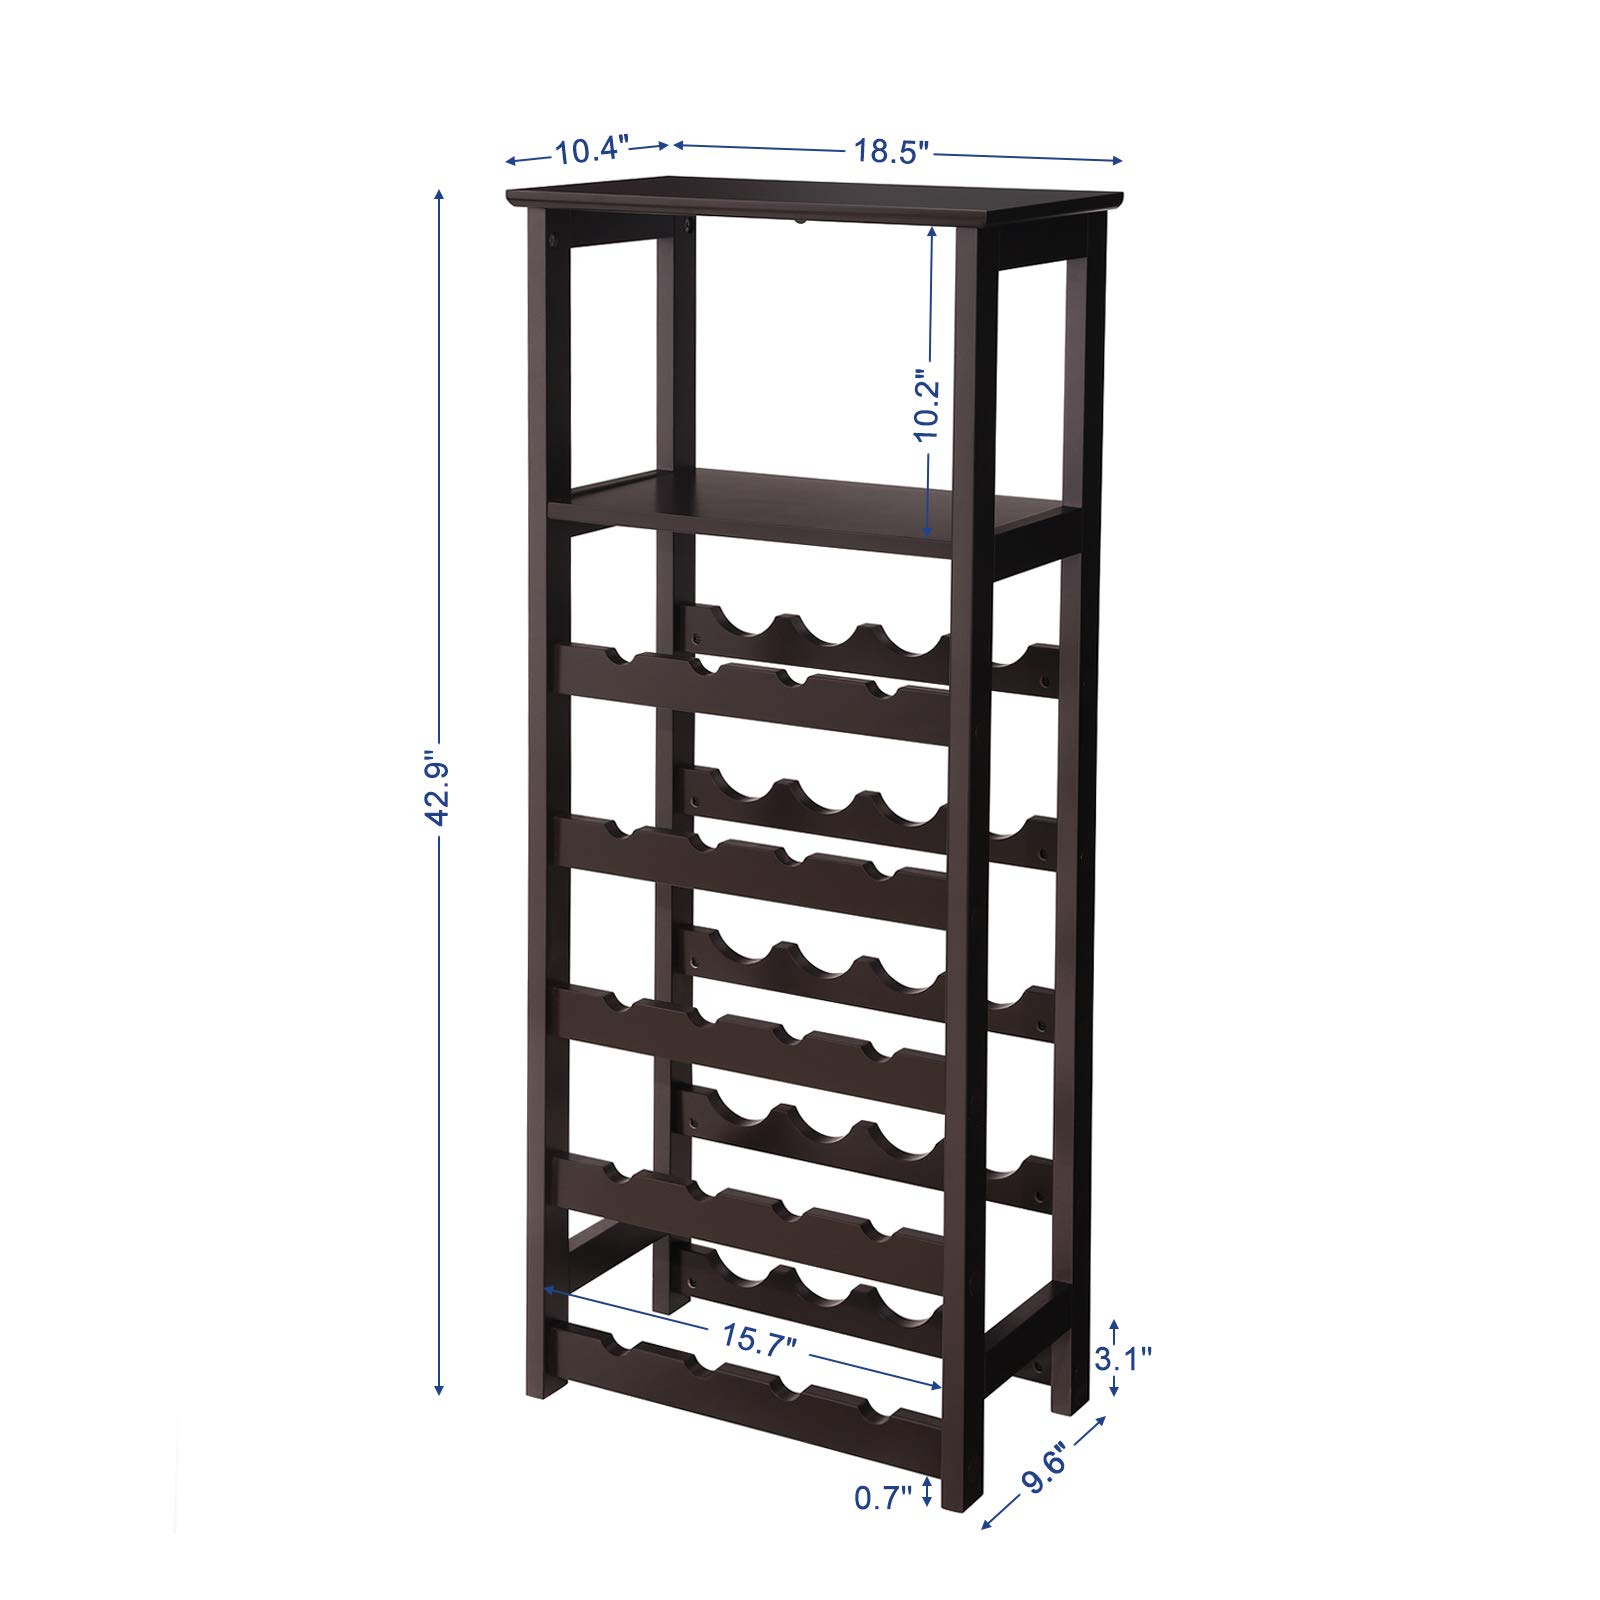 VASAGLE 20 Wooden Wine Rack, Free Standing Bottles Display Storage Shelf, with 2 Slatted Shelves,18.4''L × 10.4''W × 42.9''H, Espresso ULWR03BR by VASAGLE (Image #7)